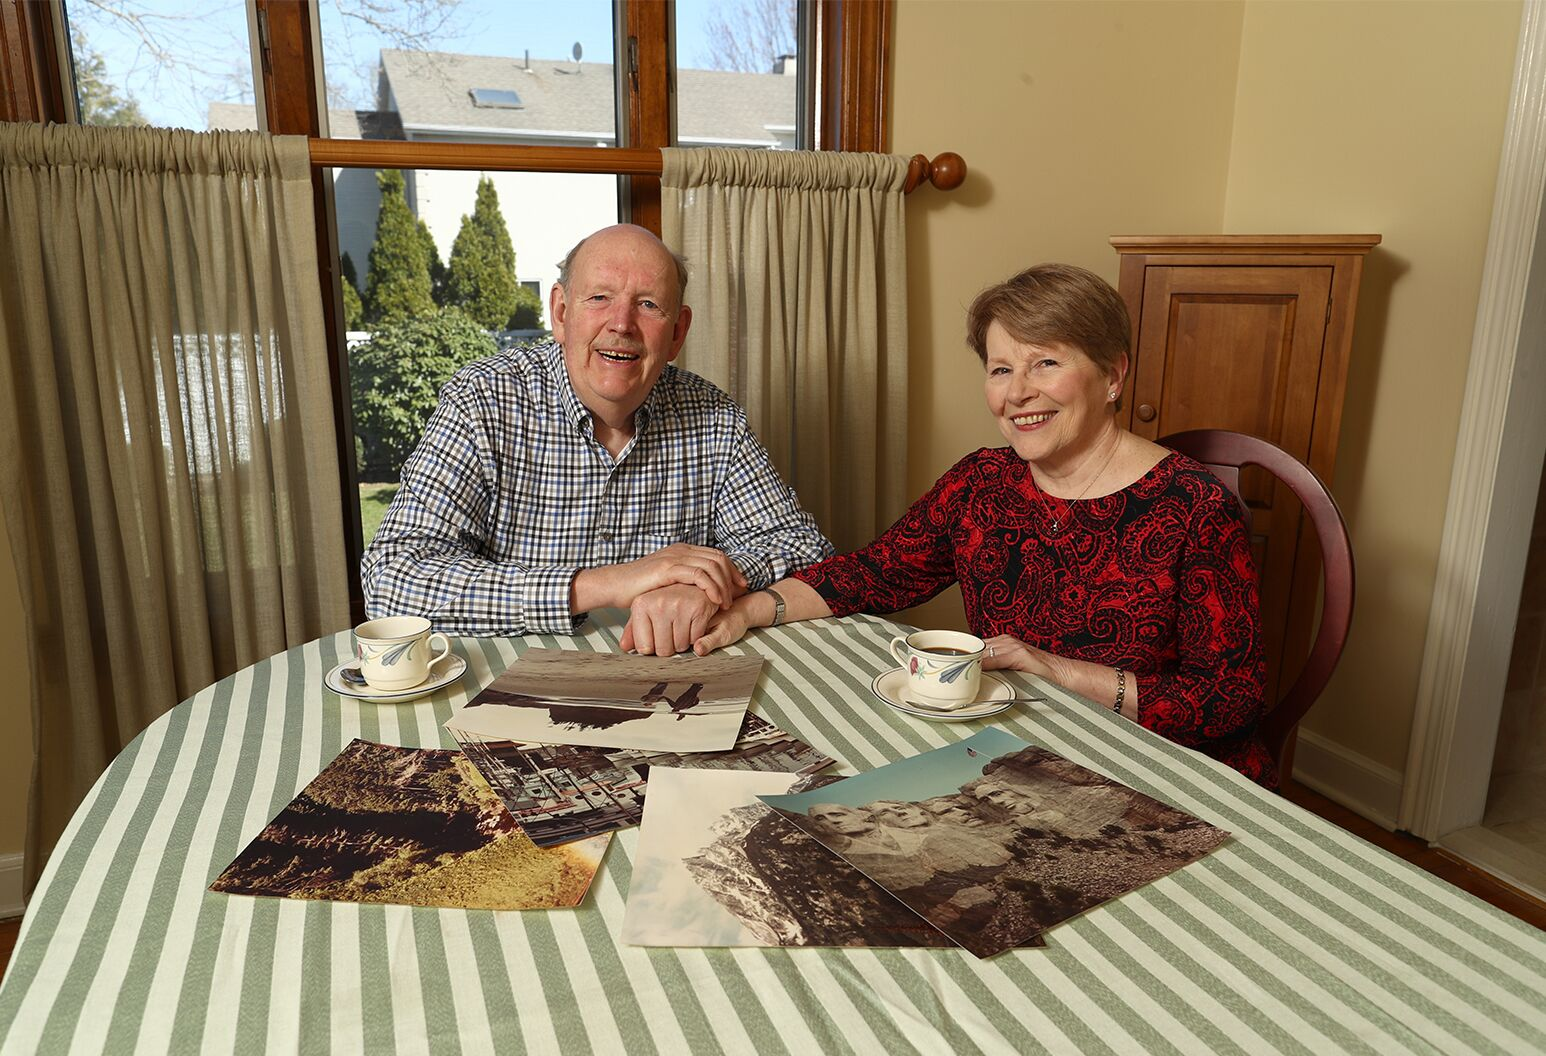 Older couple sits in their dining room holding hands with a display of photographs on the table.